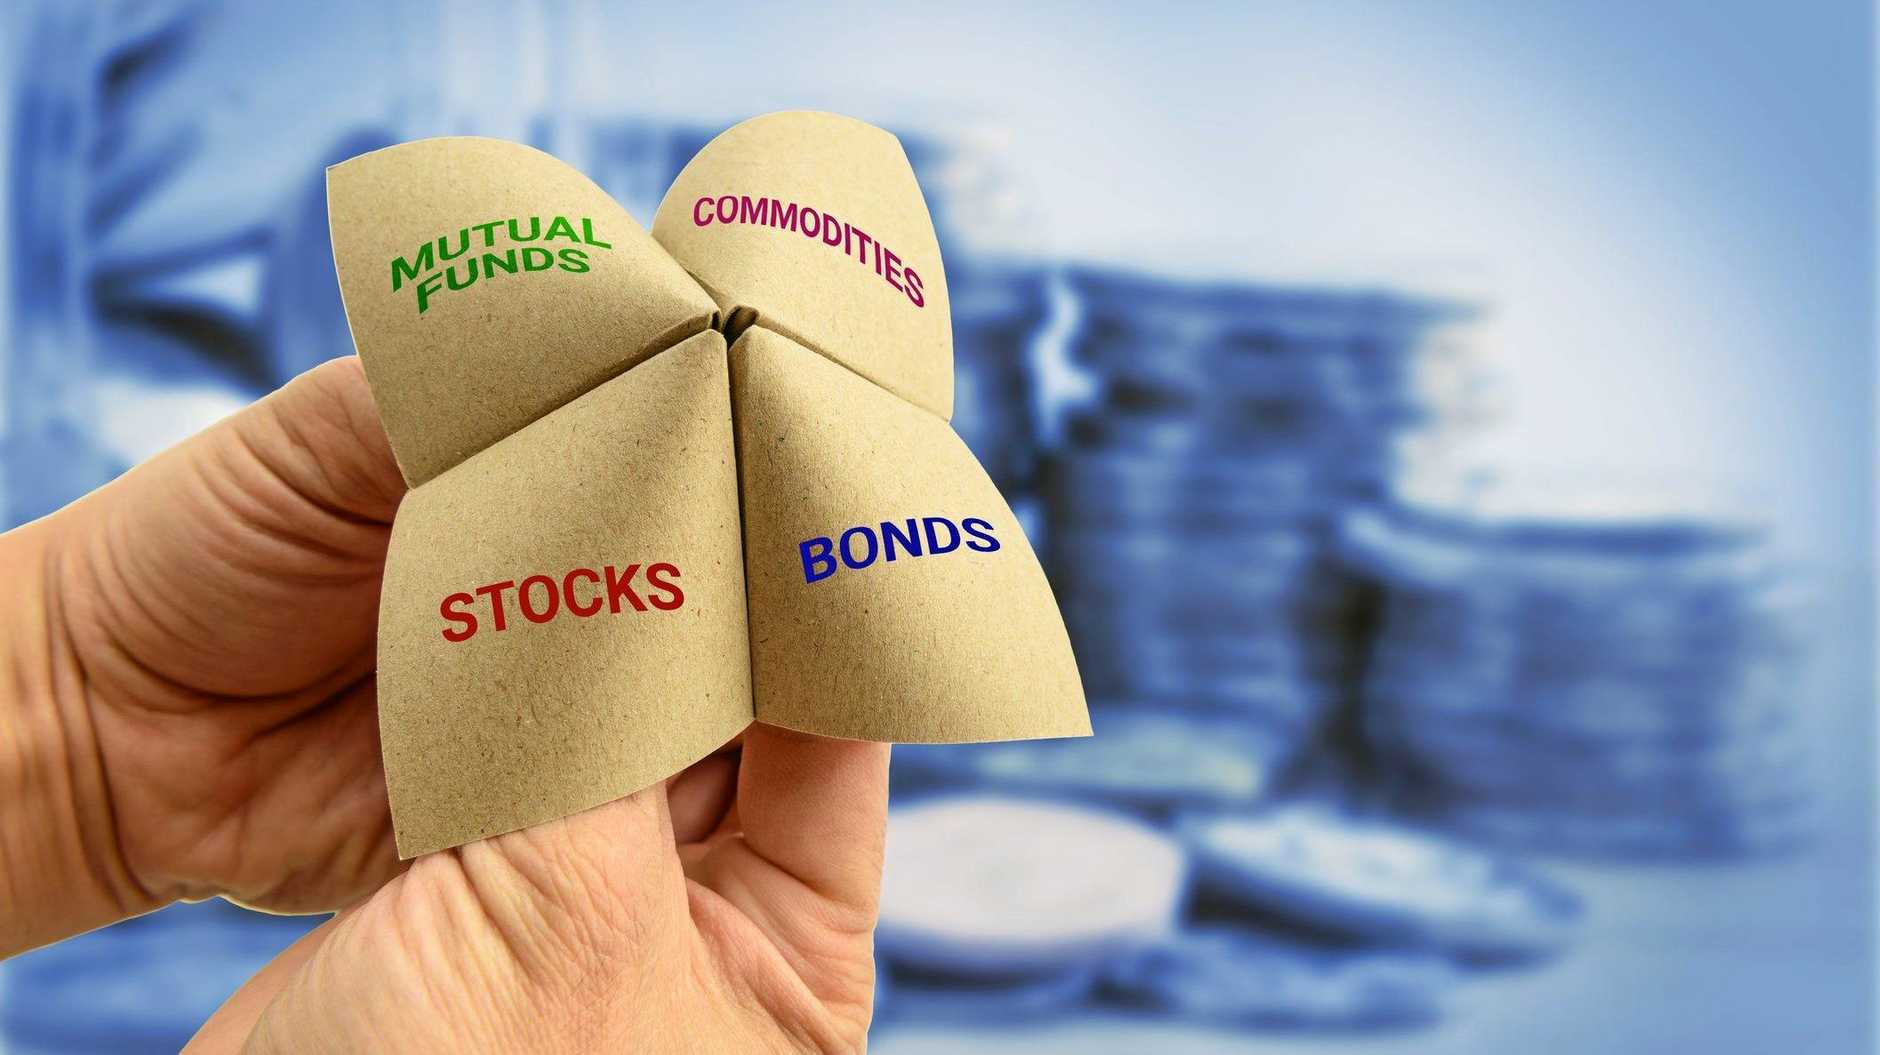 MONEY ADVICE: Regulatory risk is something no investor can turn a blind eye to.